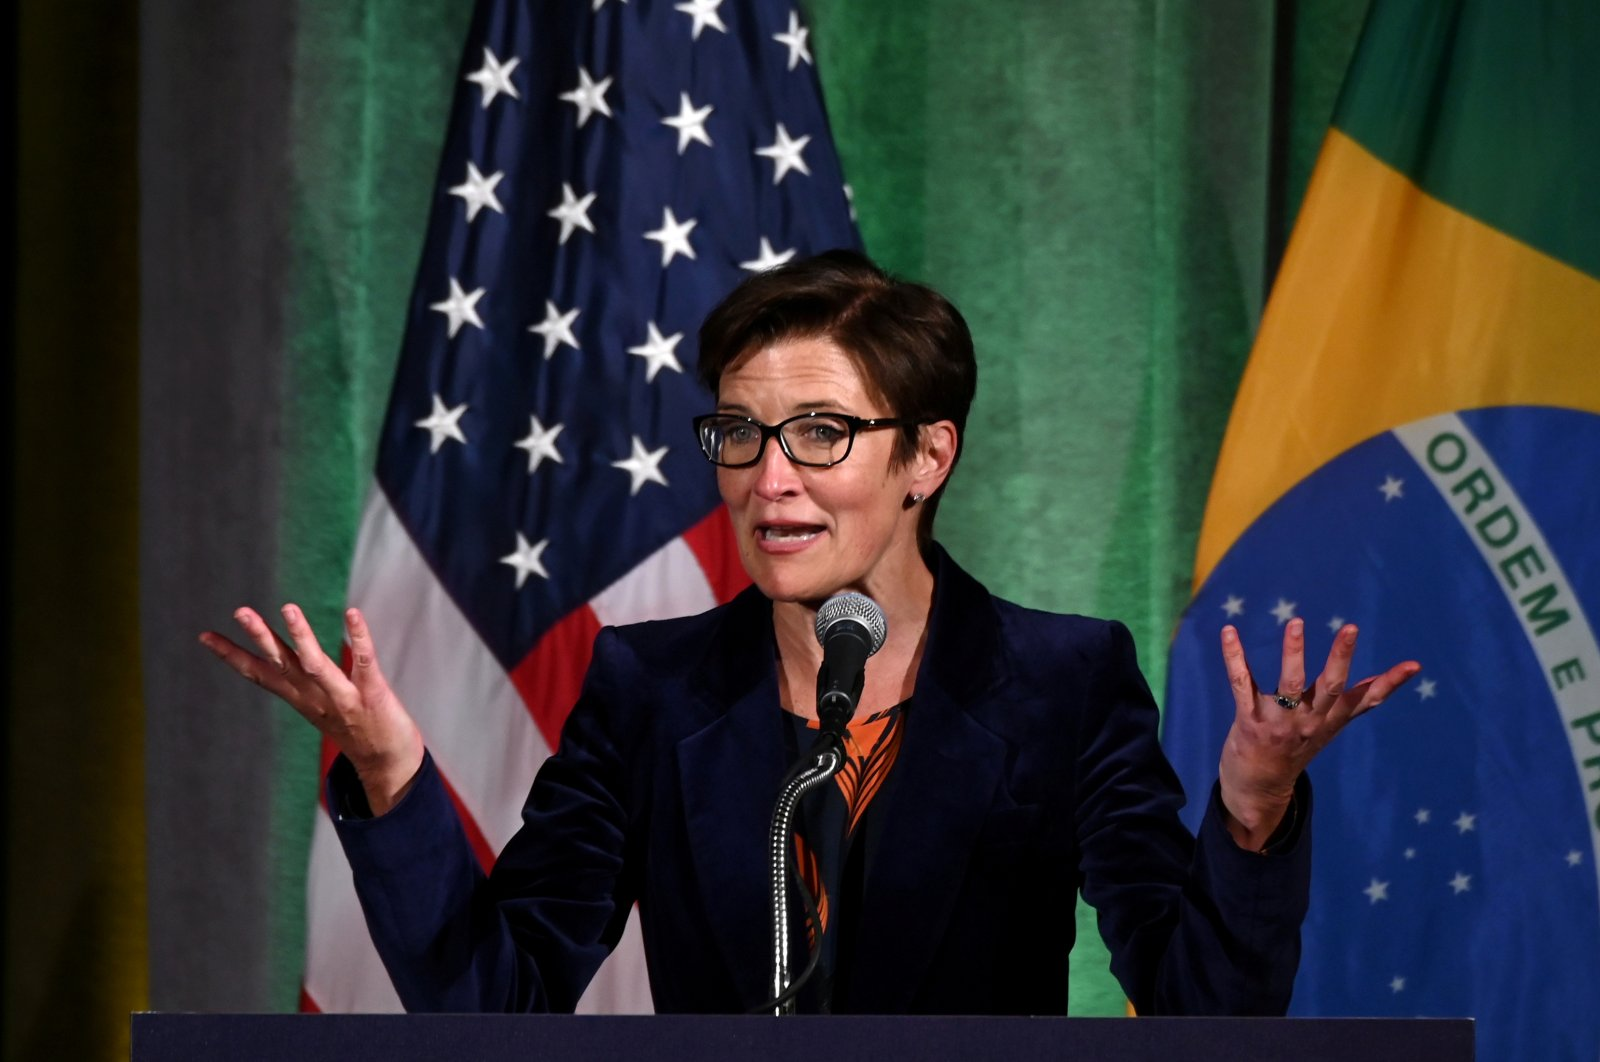 Citigroup's then-Latin America CEO Jane Fraser addresses a Brazil-U.S. Business Council forum to discuss relations and future cooperation in Washington, D.C., U.S., March 18, 2019. (Reuters Photo)